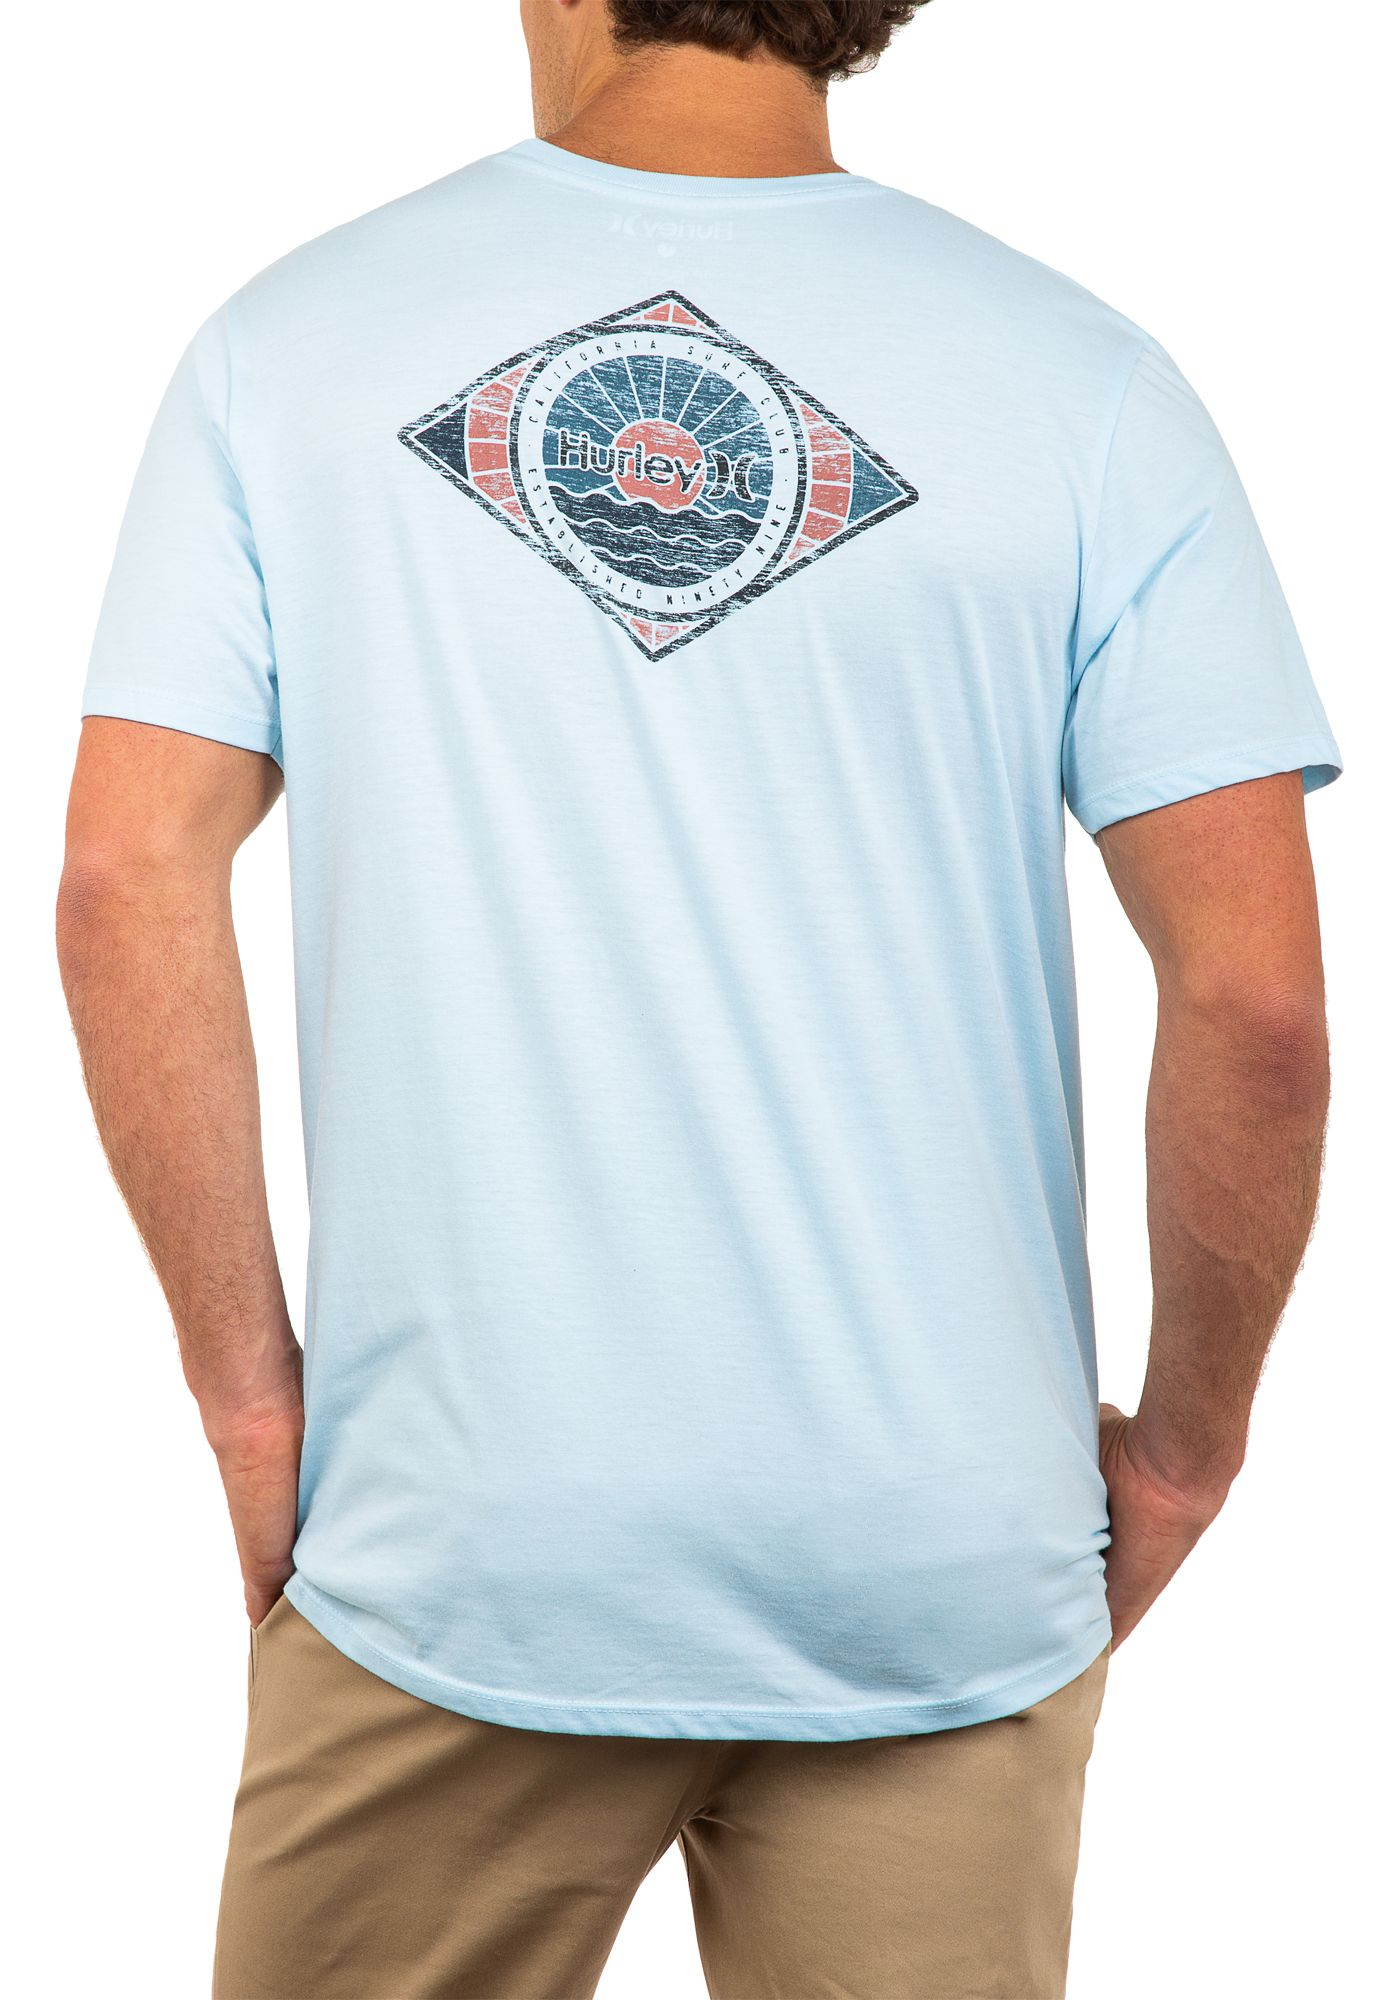 Hurley Men's Out To Sea Premium T-Shirt